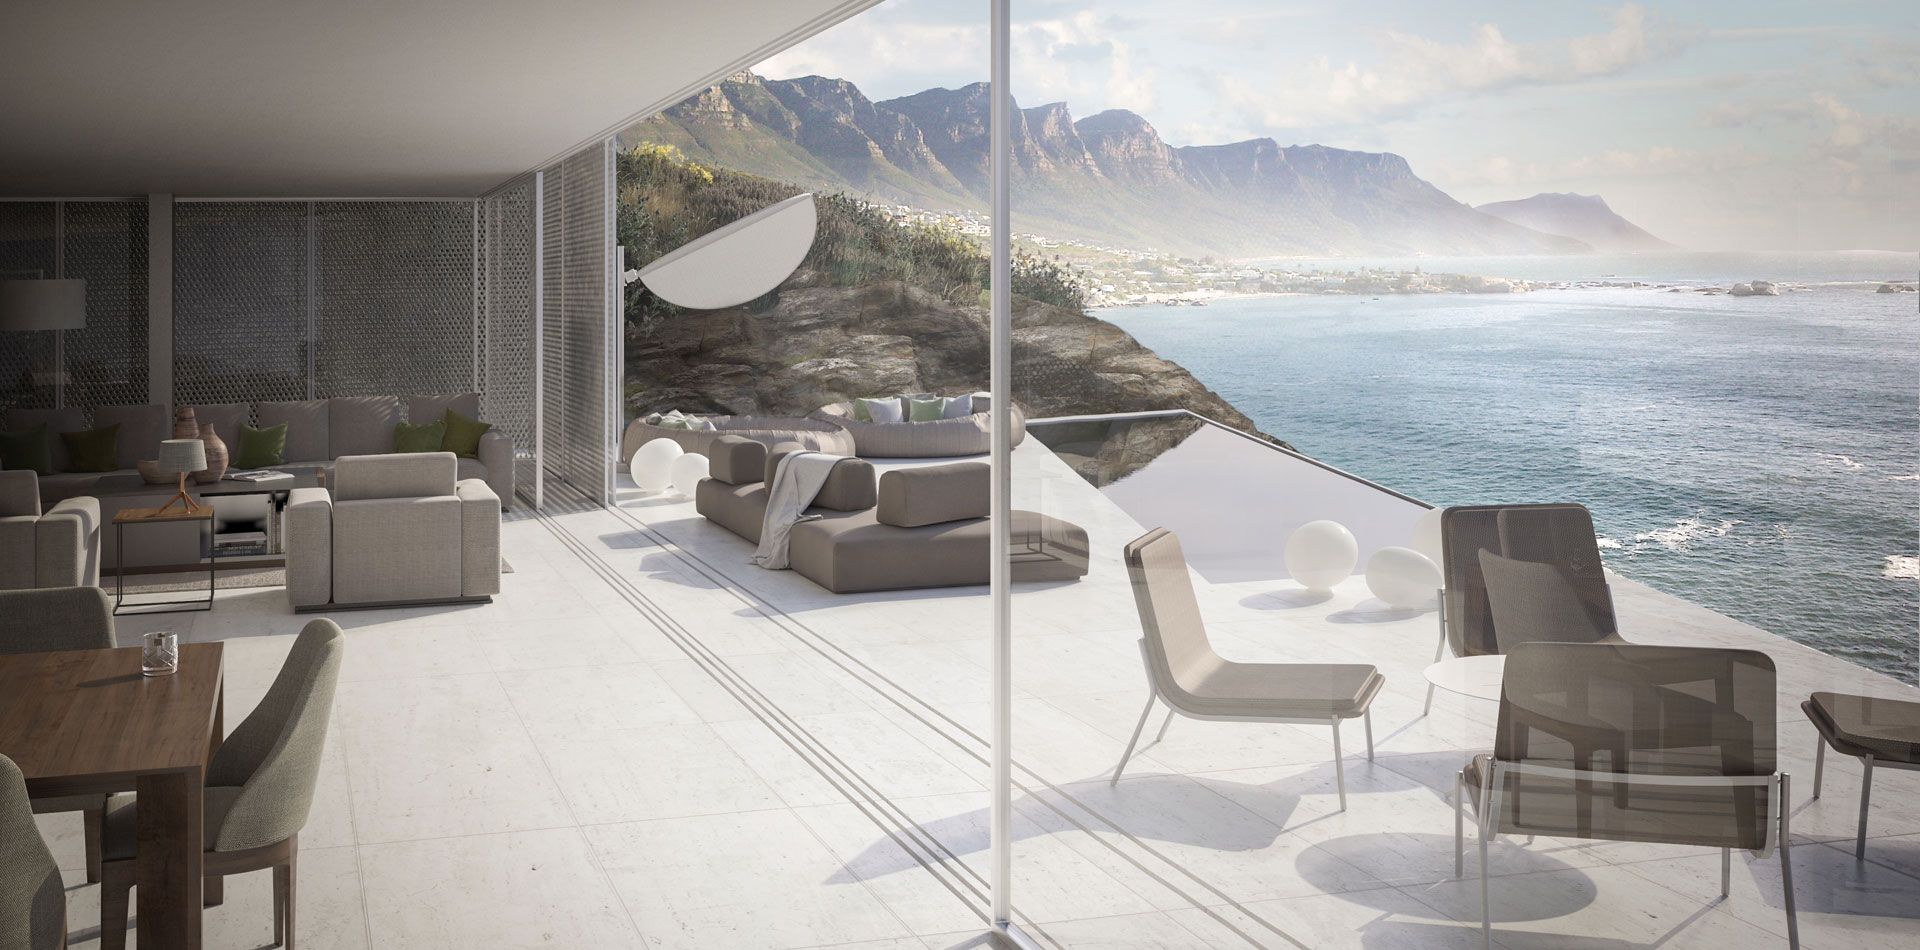 Terri Brown 3D visualisation Vray 3DS Max Cape Town Coast Luxury Modern Marble Pool Living